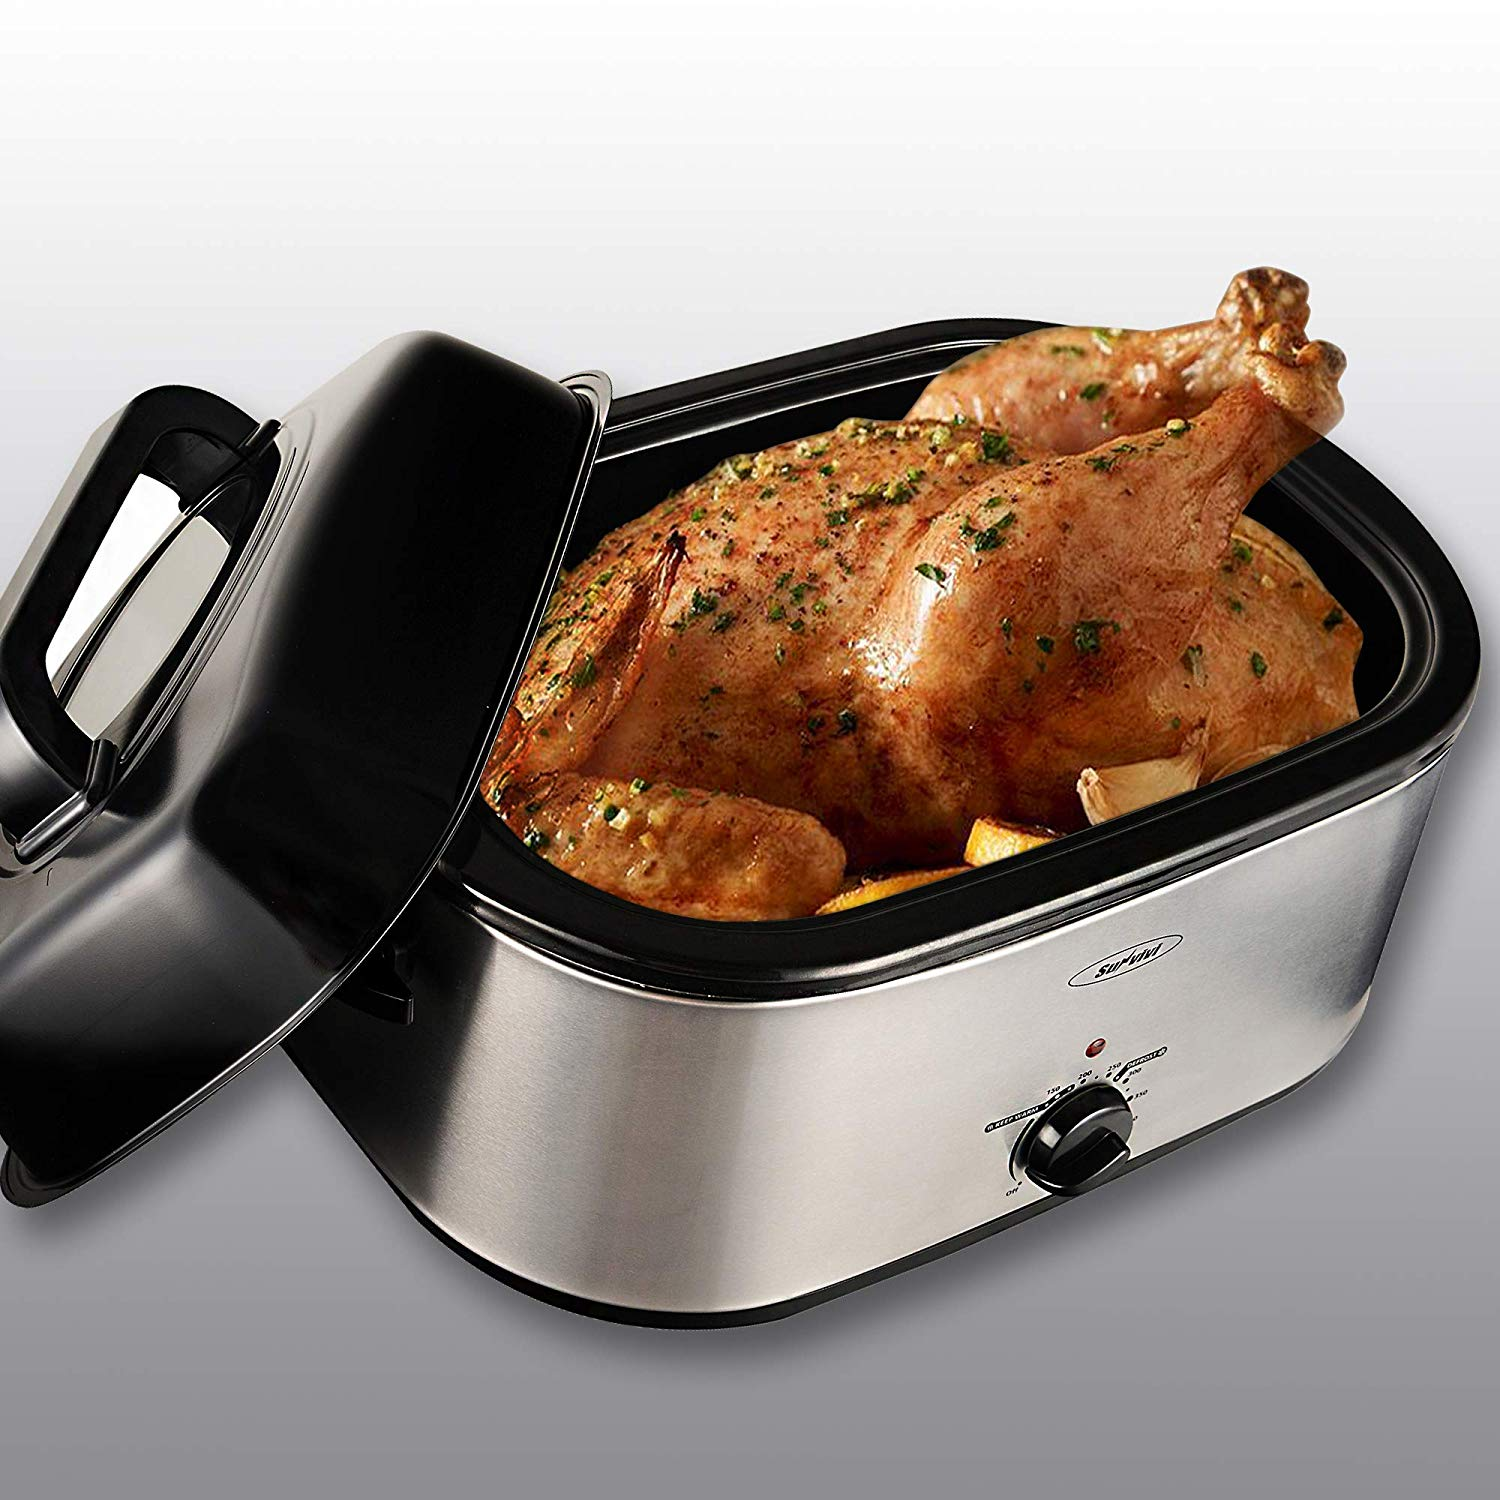 Roaster Oven with Red Light, 20 Quart, Stainless Steel, Silver